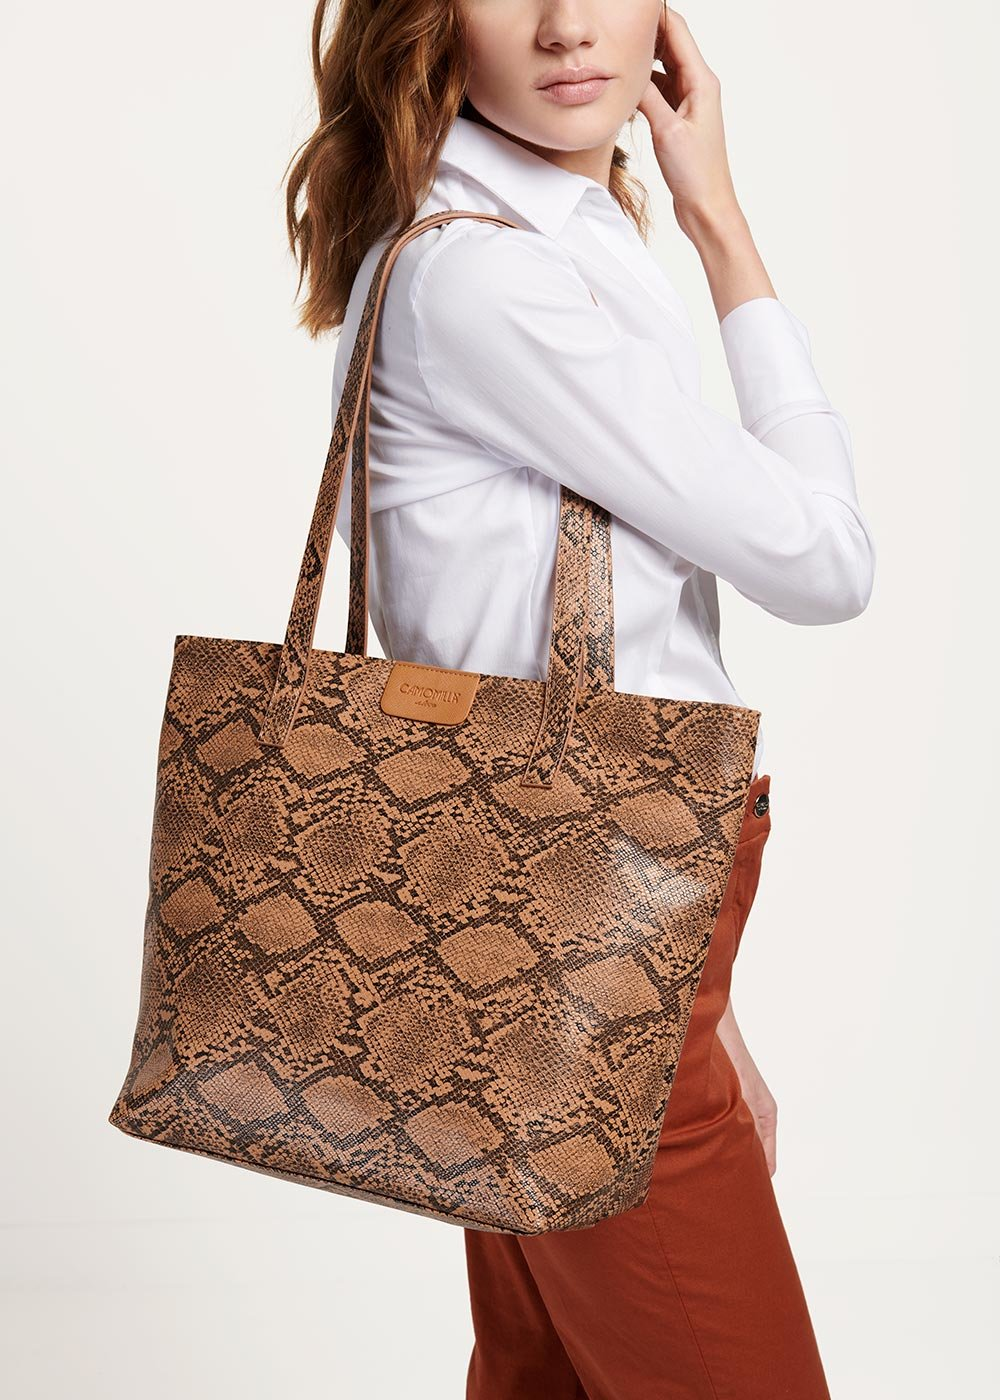 Badia shopping bag - Suolo Animalier - Woman